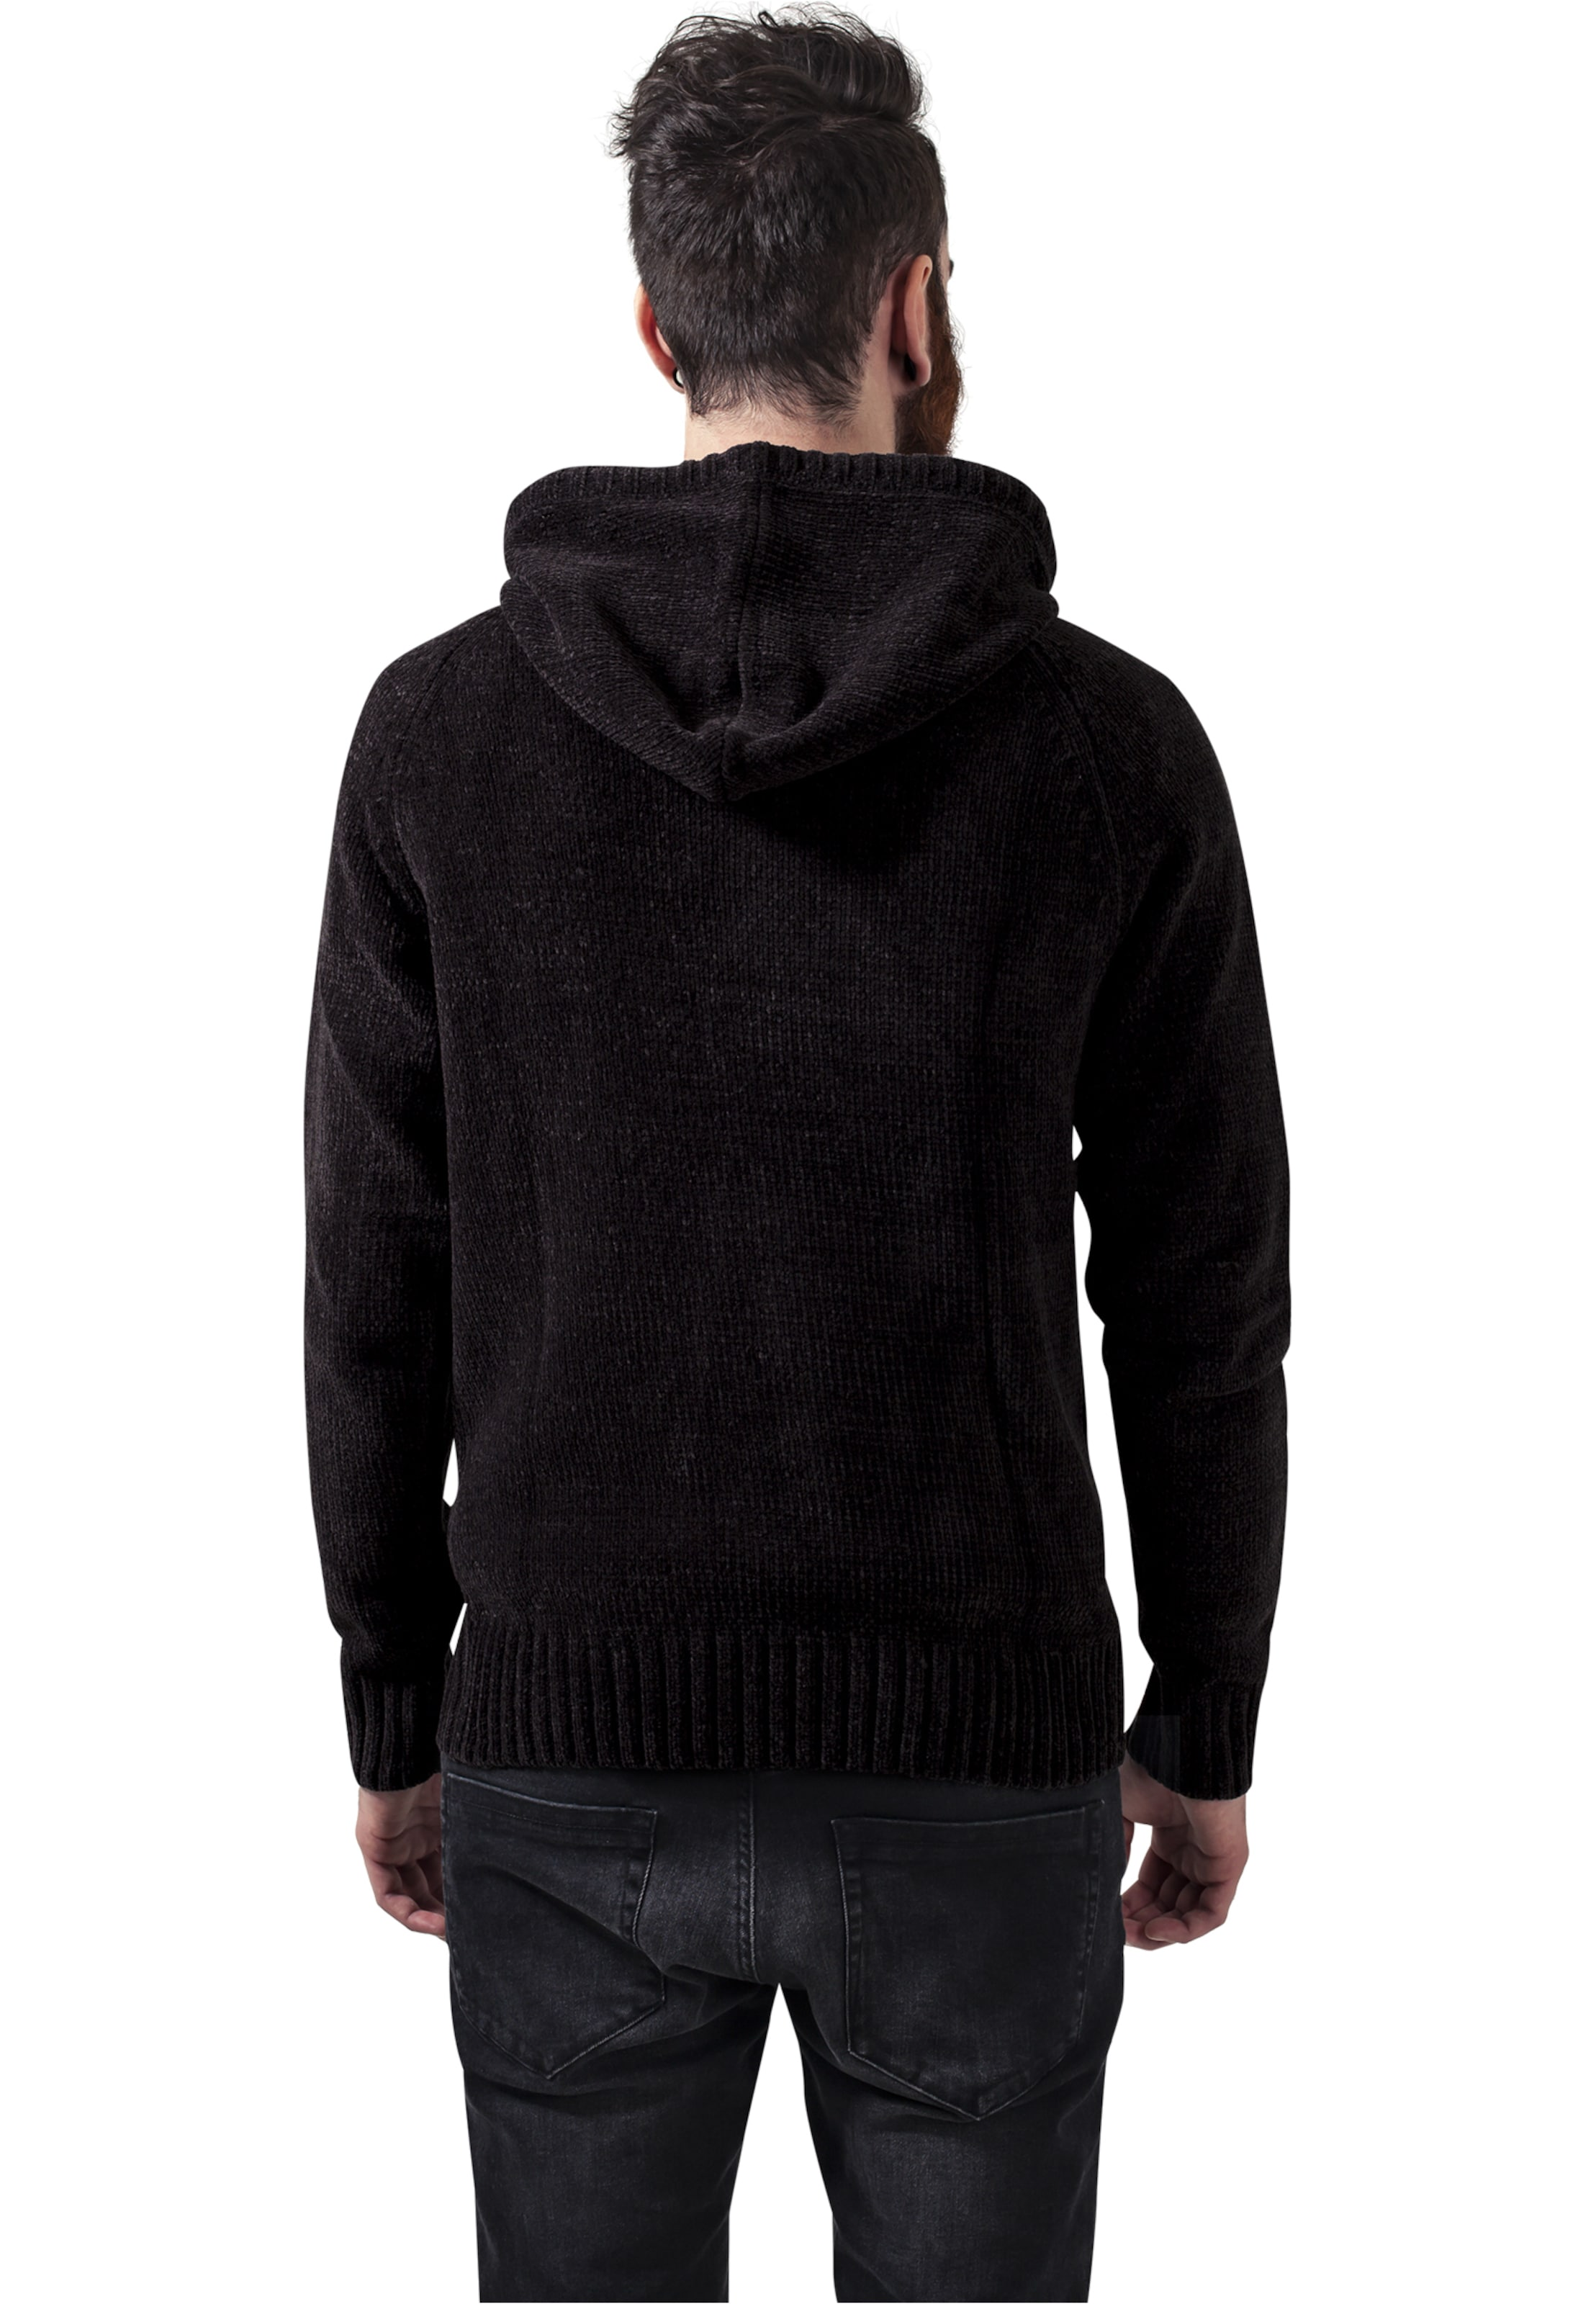 Classics Schwarz Sweater In Urban Sweater In Schwarz Classics In Urban Sweater Urban Classics ULGMVSqzp